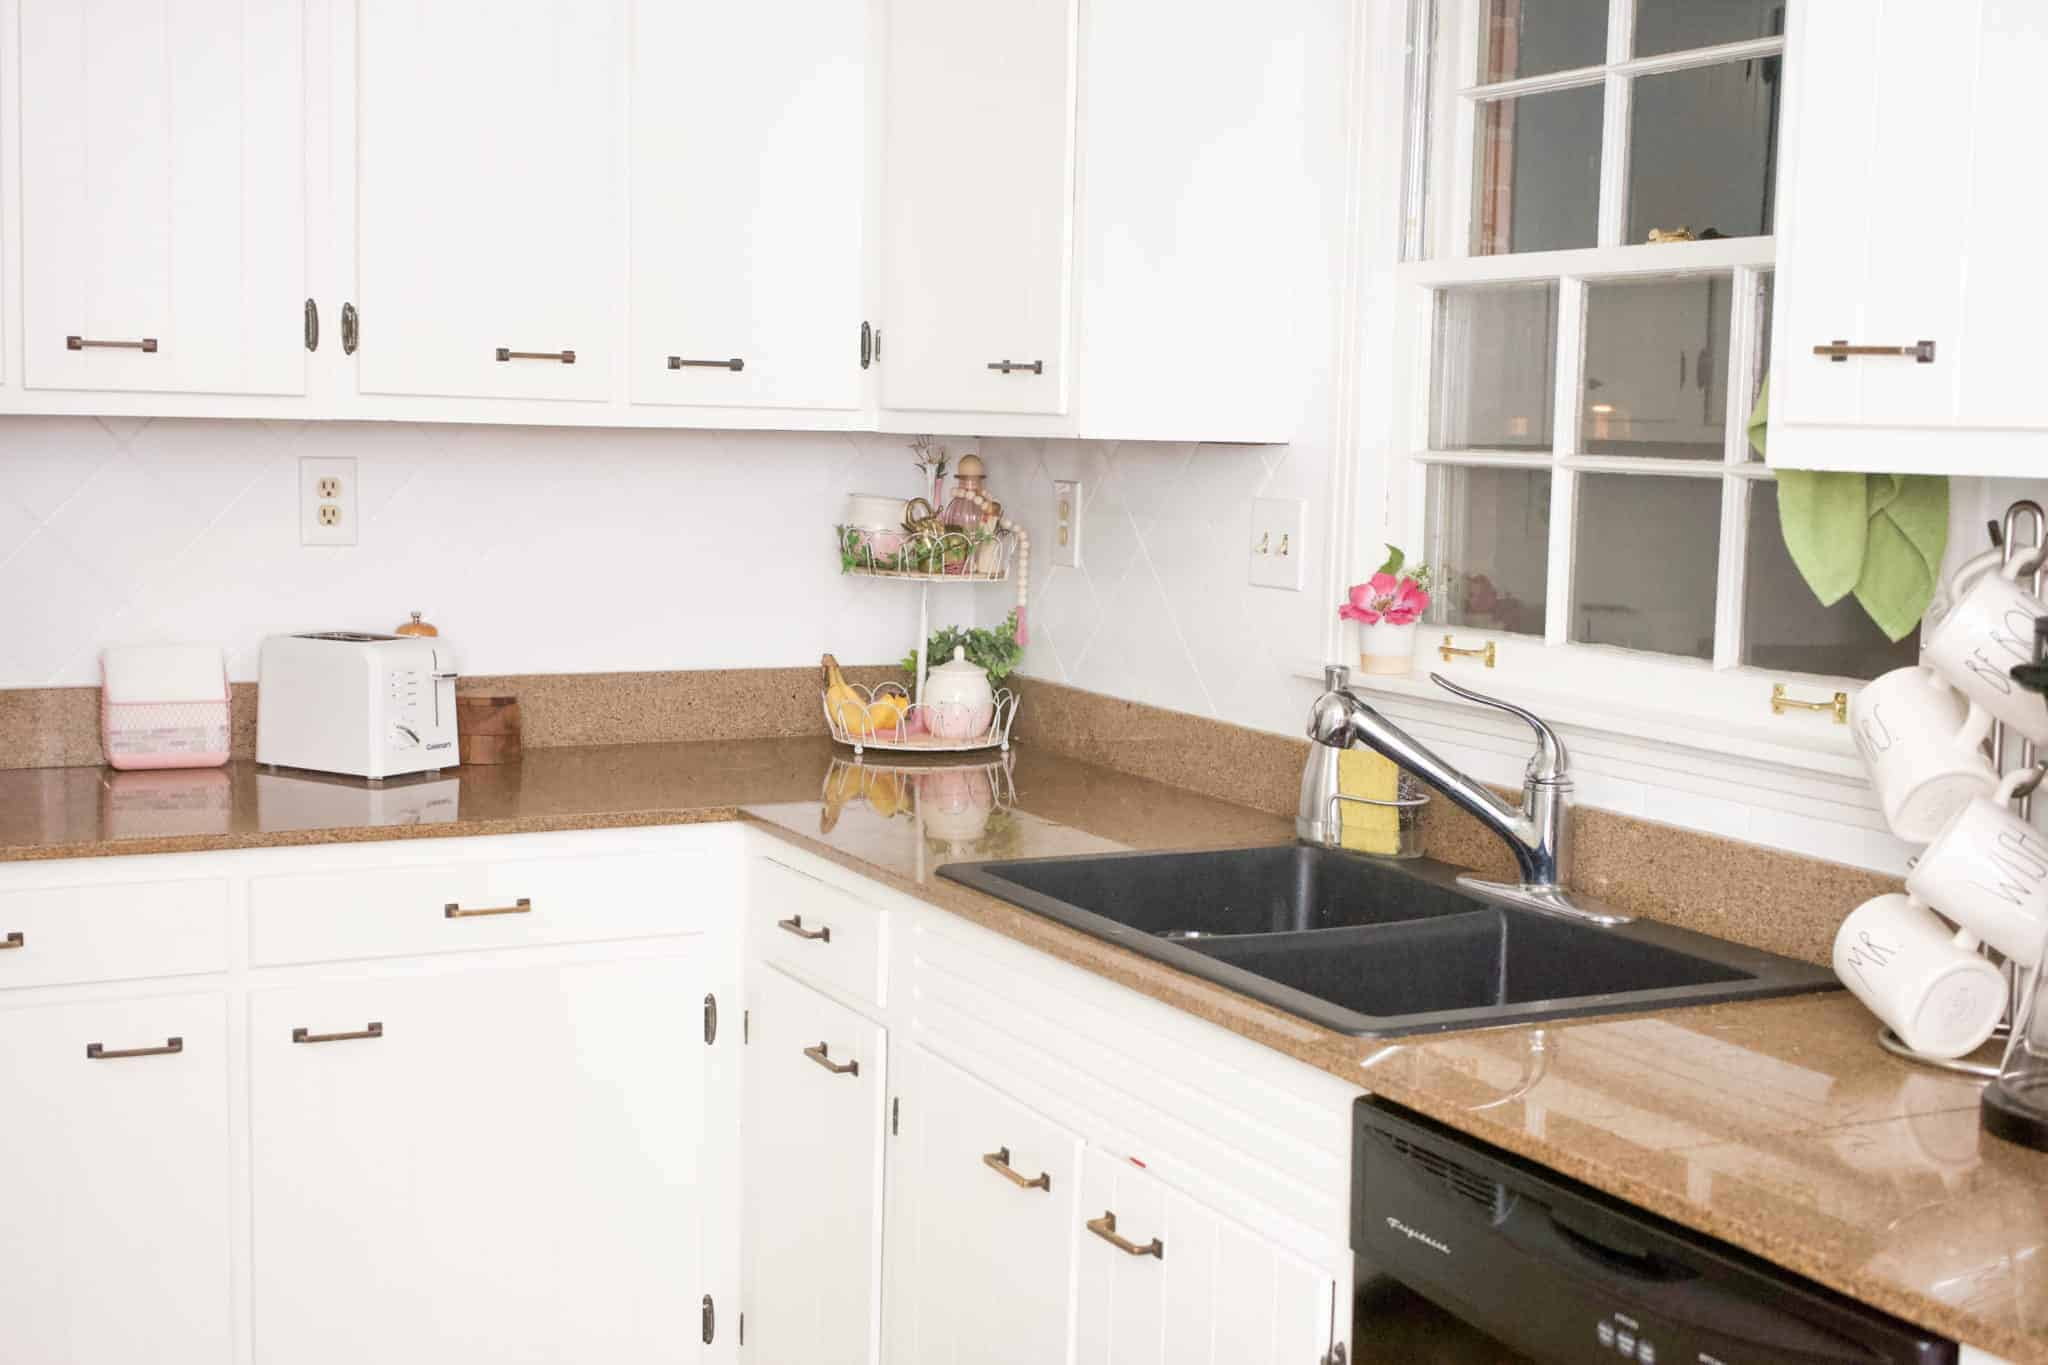 - How To Paint A Ceramic Tile Backsplash - Health, Home, And Heart